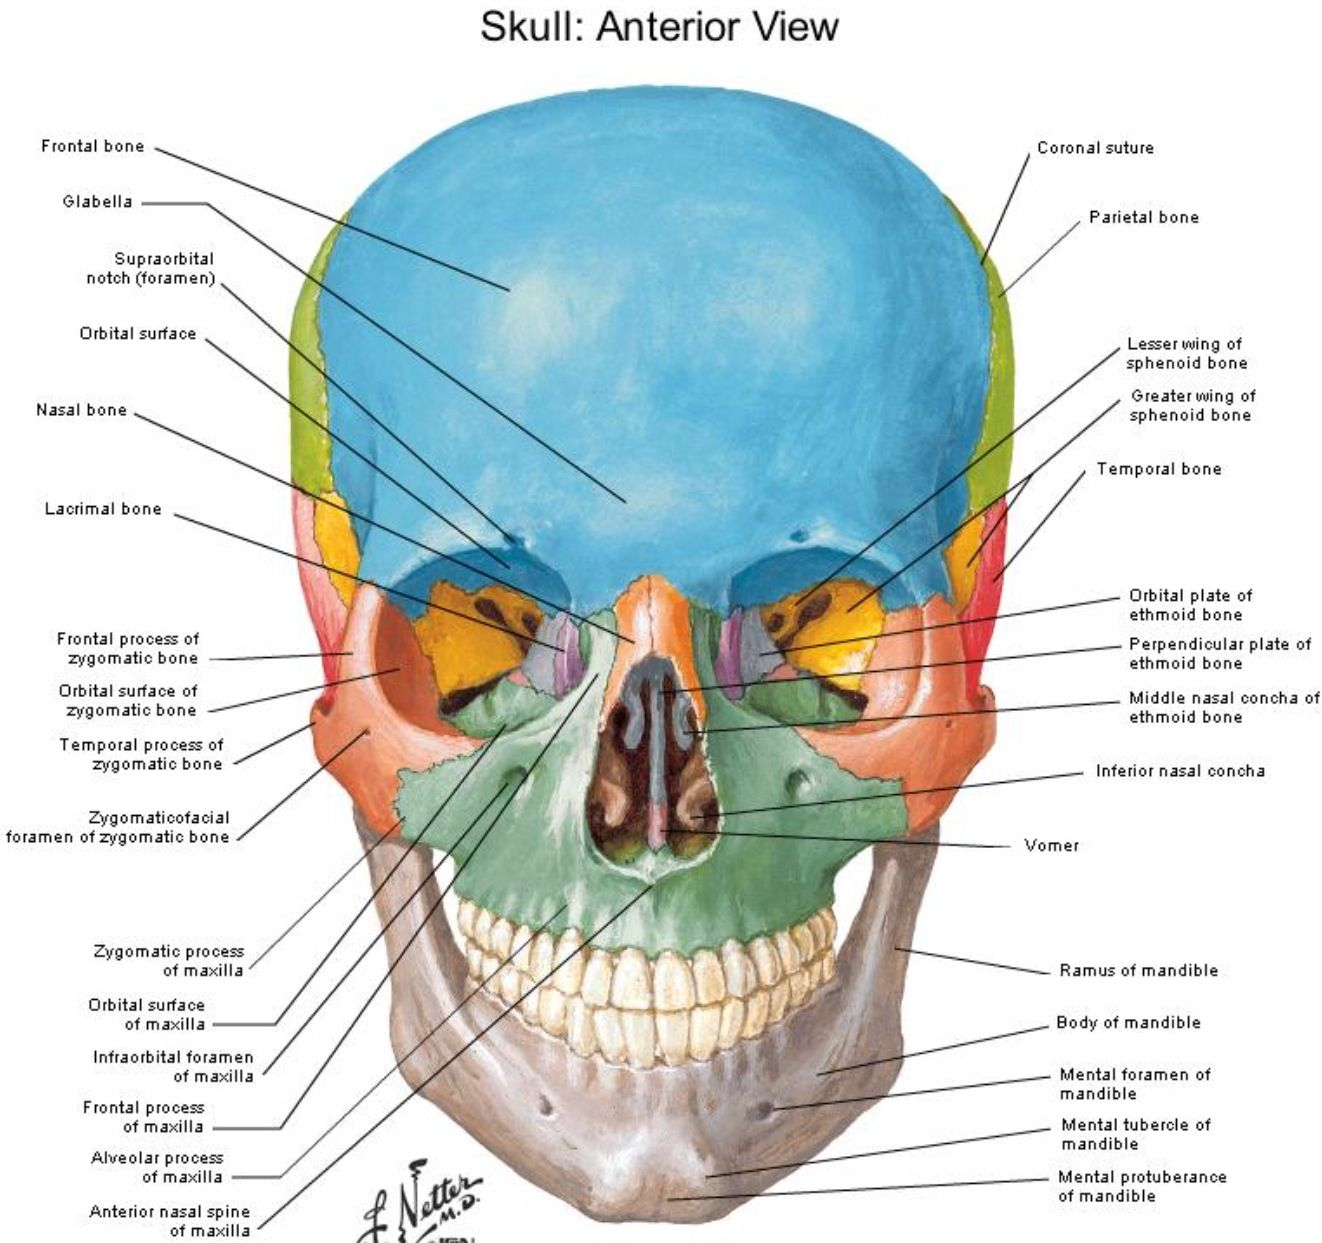 Face Bone Diagram Coleman Evcon Electric Furnace Wiring Anterior View Skull Netter Anatomy Pinterest